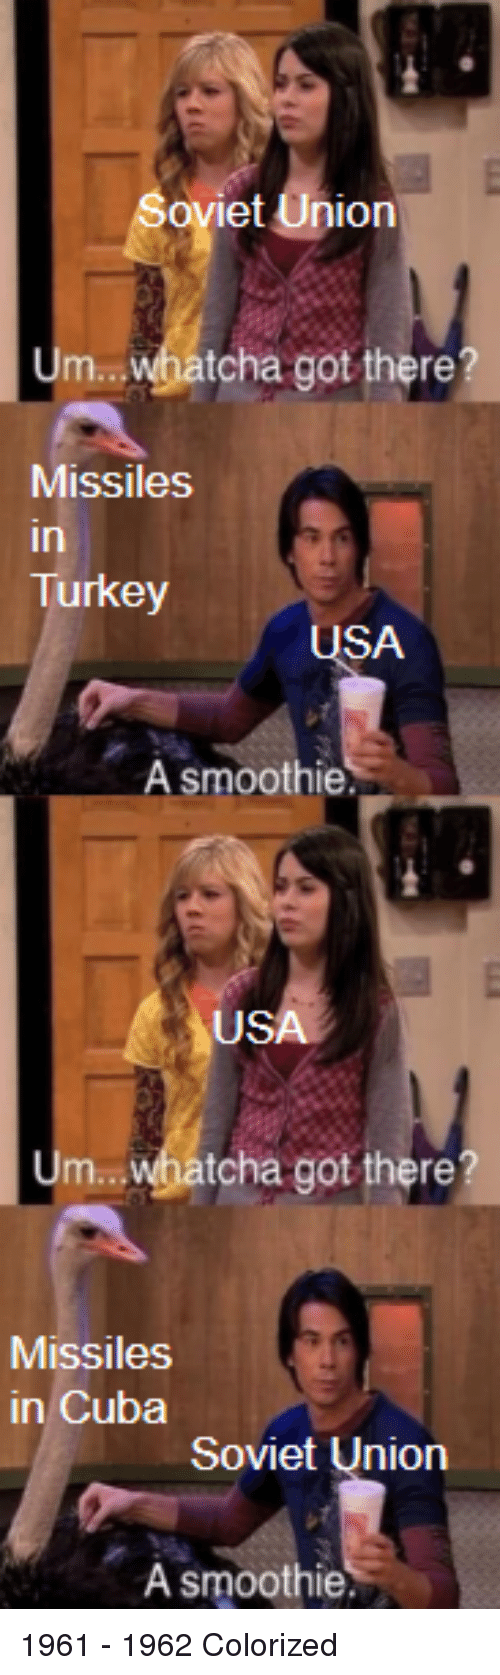 So Et Union Um Whatcha Got There? Missiles in Turkey SA a